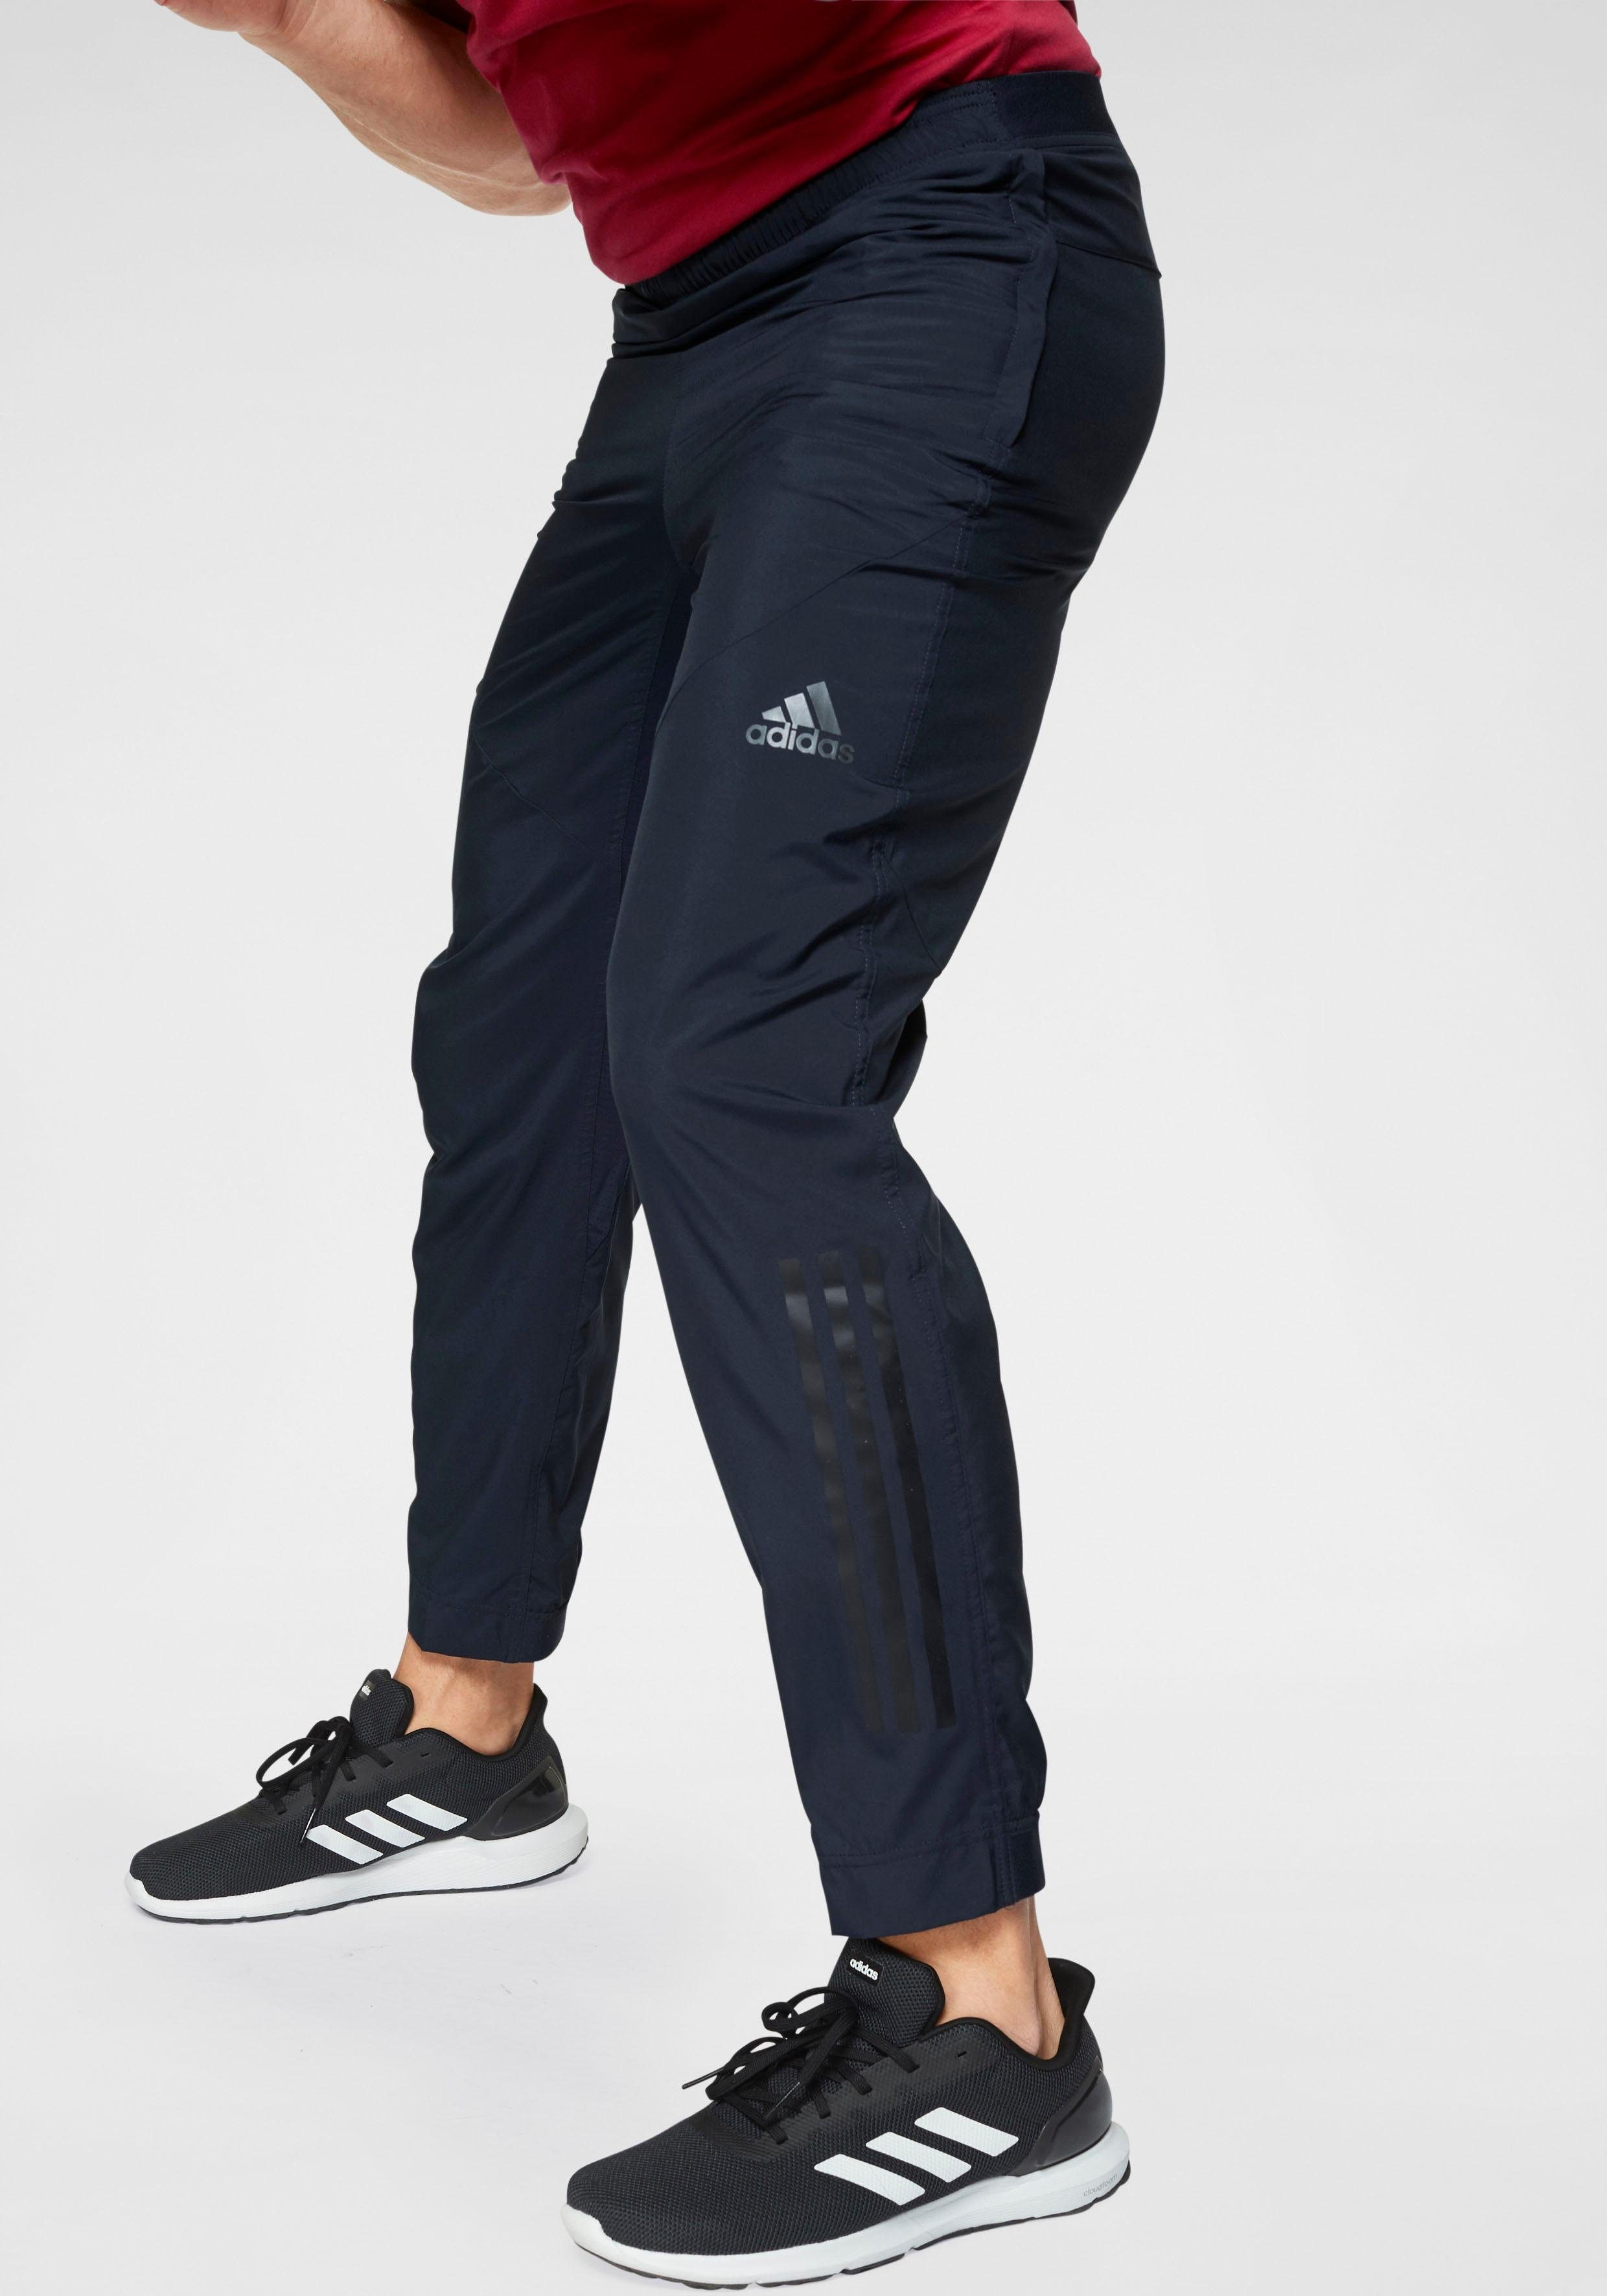 adidas Performance Sporthose »WOVEN PANT CLIMACOOL« online kaufen | OTTO